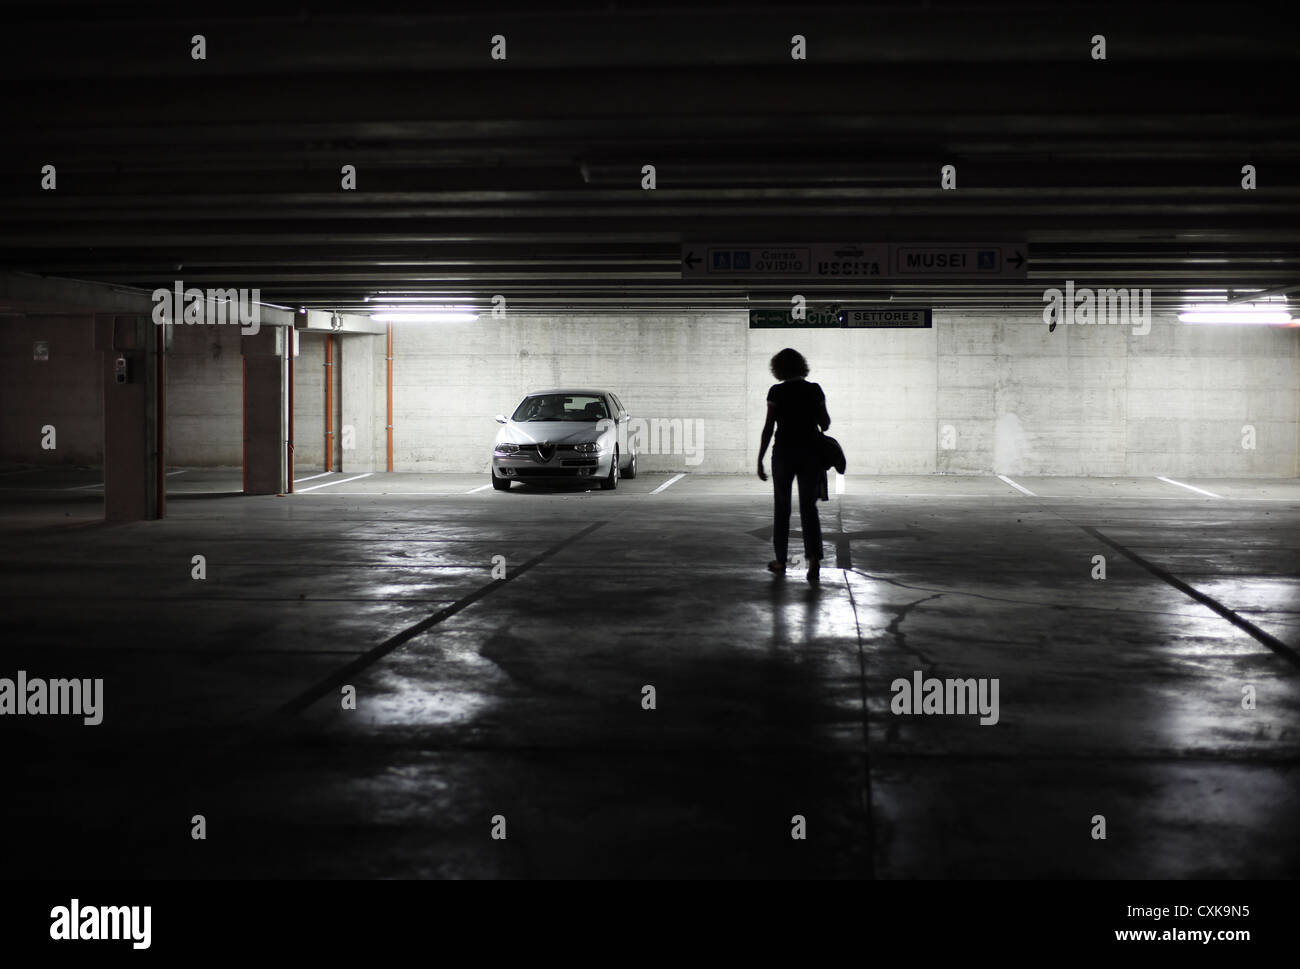 A lone woman returns to her car in a lonely underground car park. - Stock Image